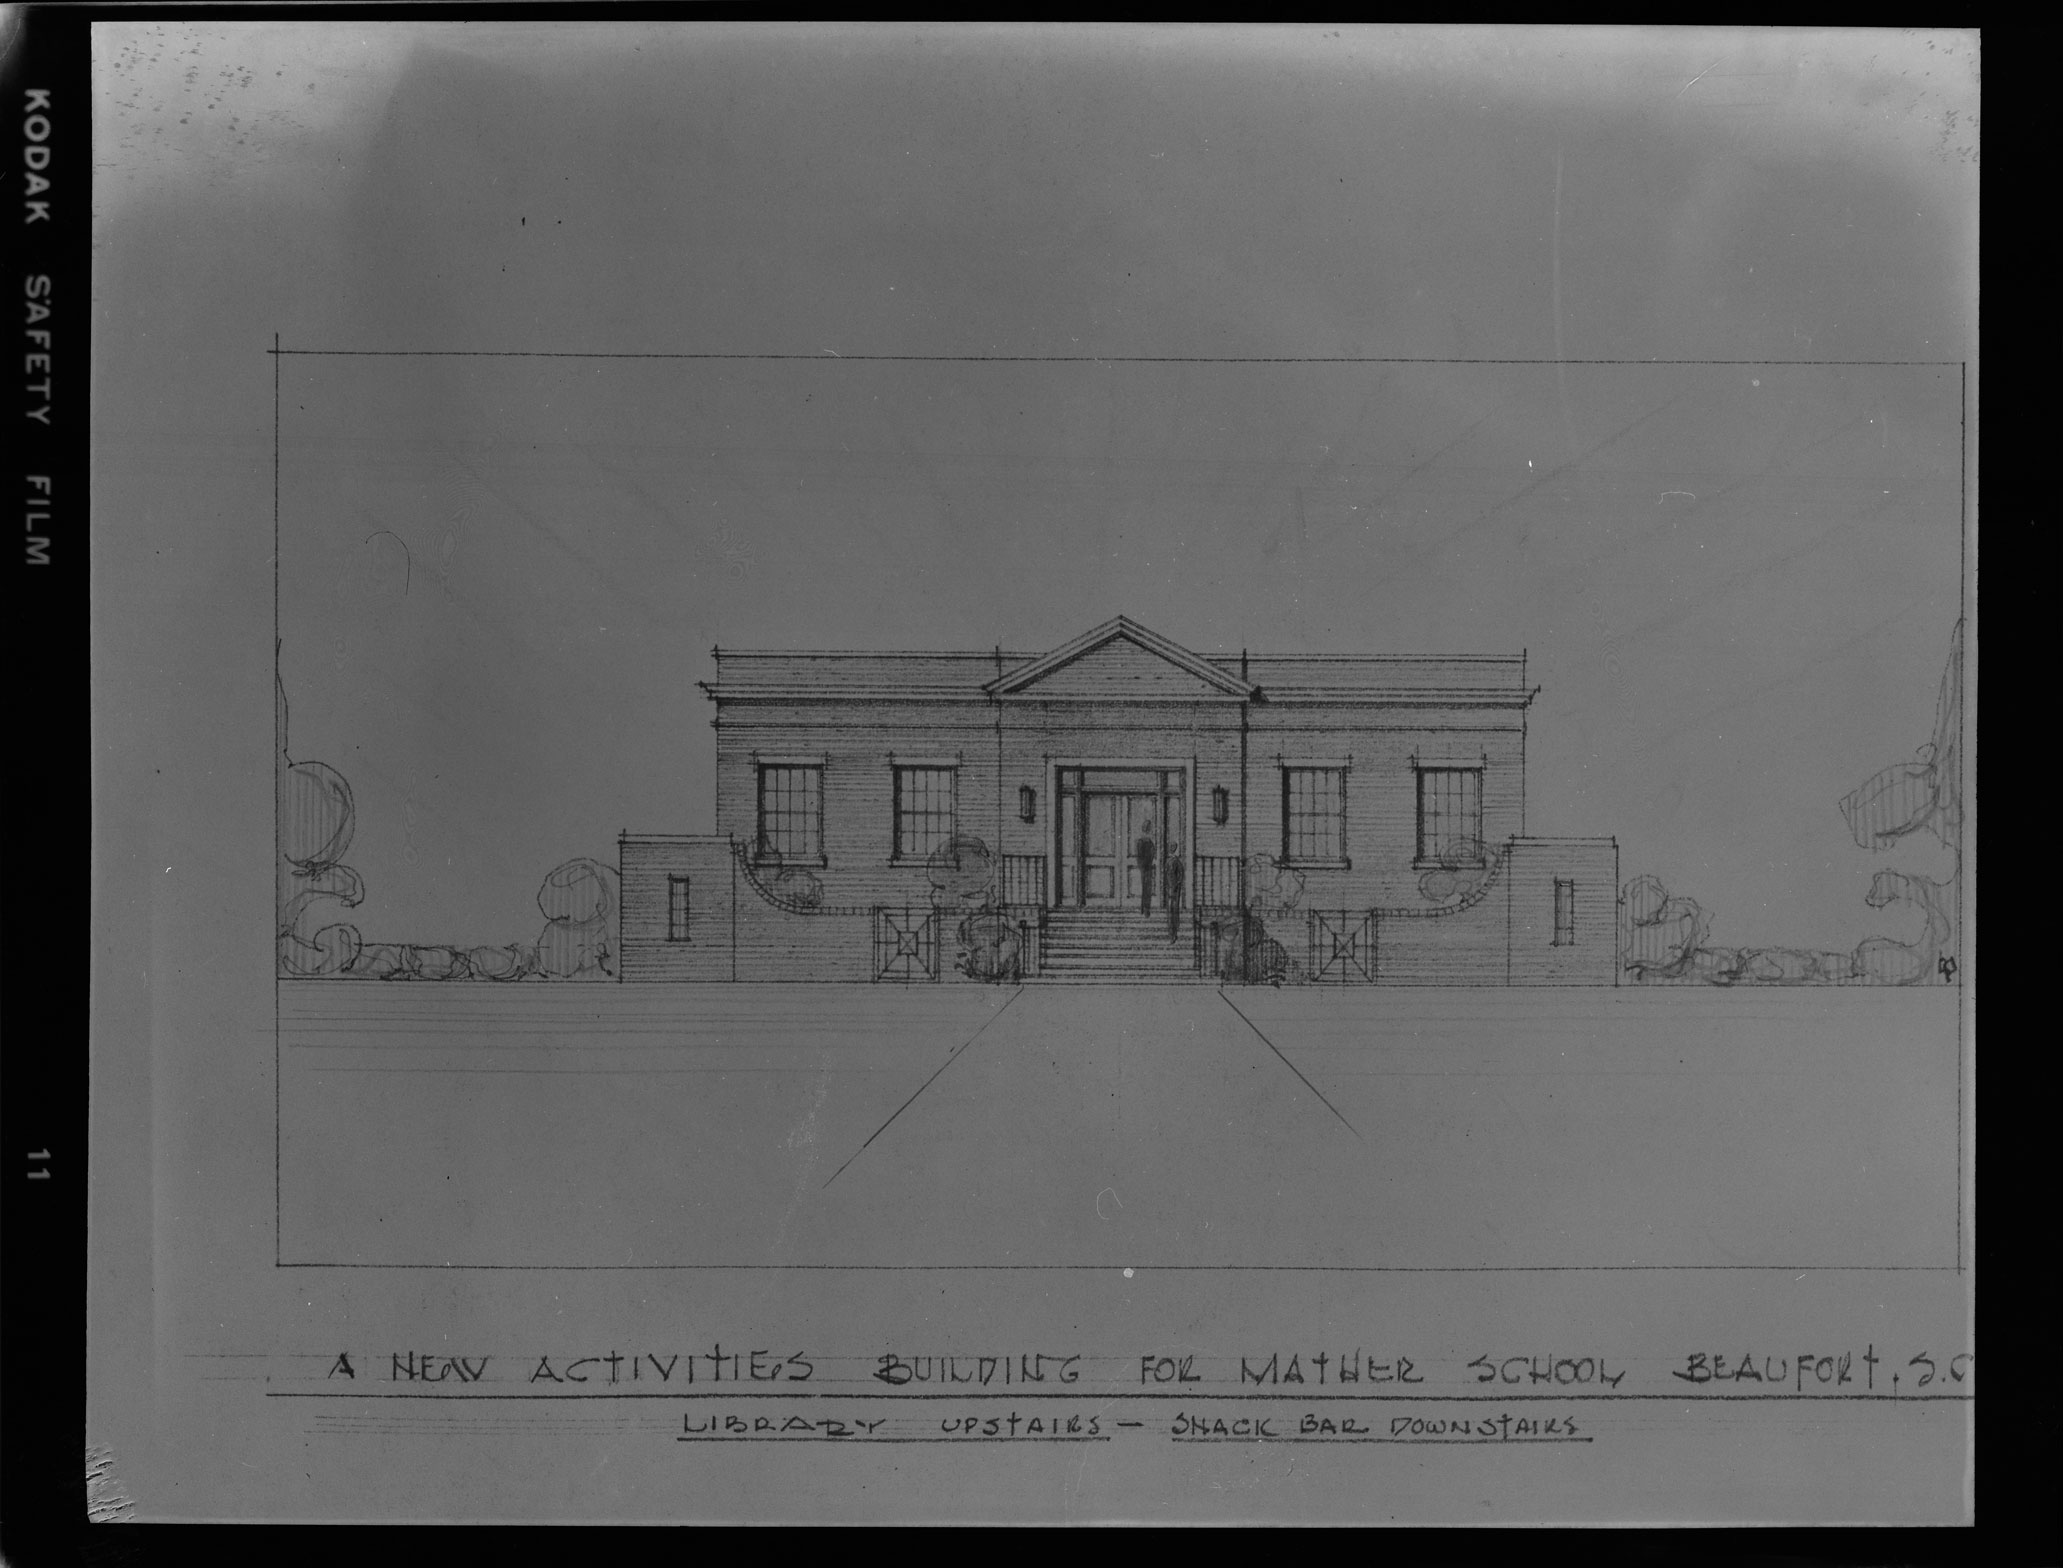 New Activities Building for Mather School architectural drawing by Augustus E. Constantine of Charleston, S.C.